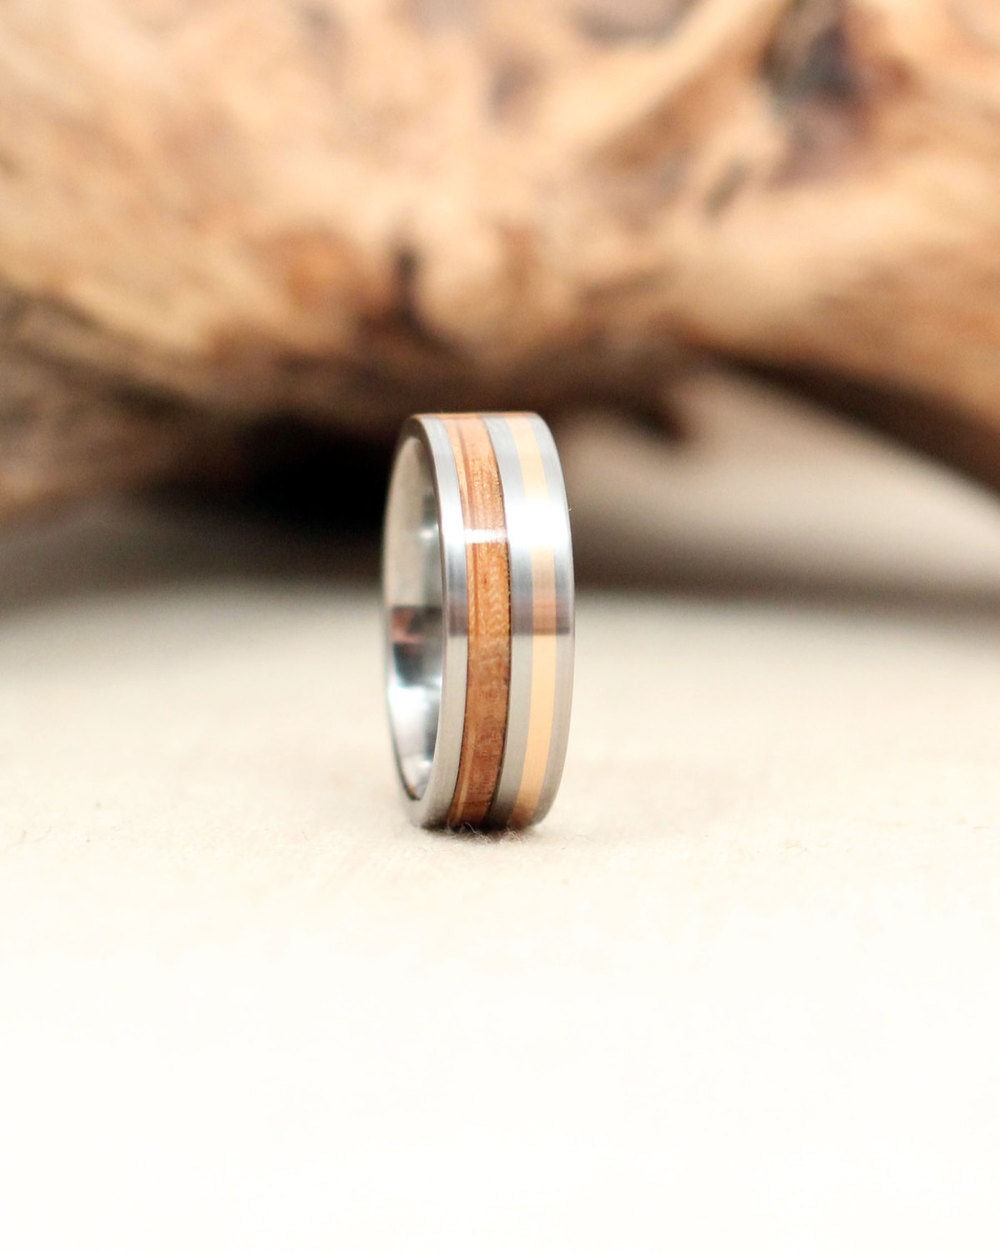 Wooden Ring with Titanium and Gold - Bourbon Barrel Stave White Oak Wooden Ring